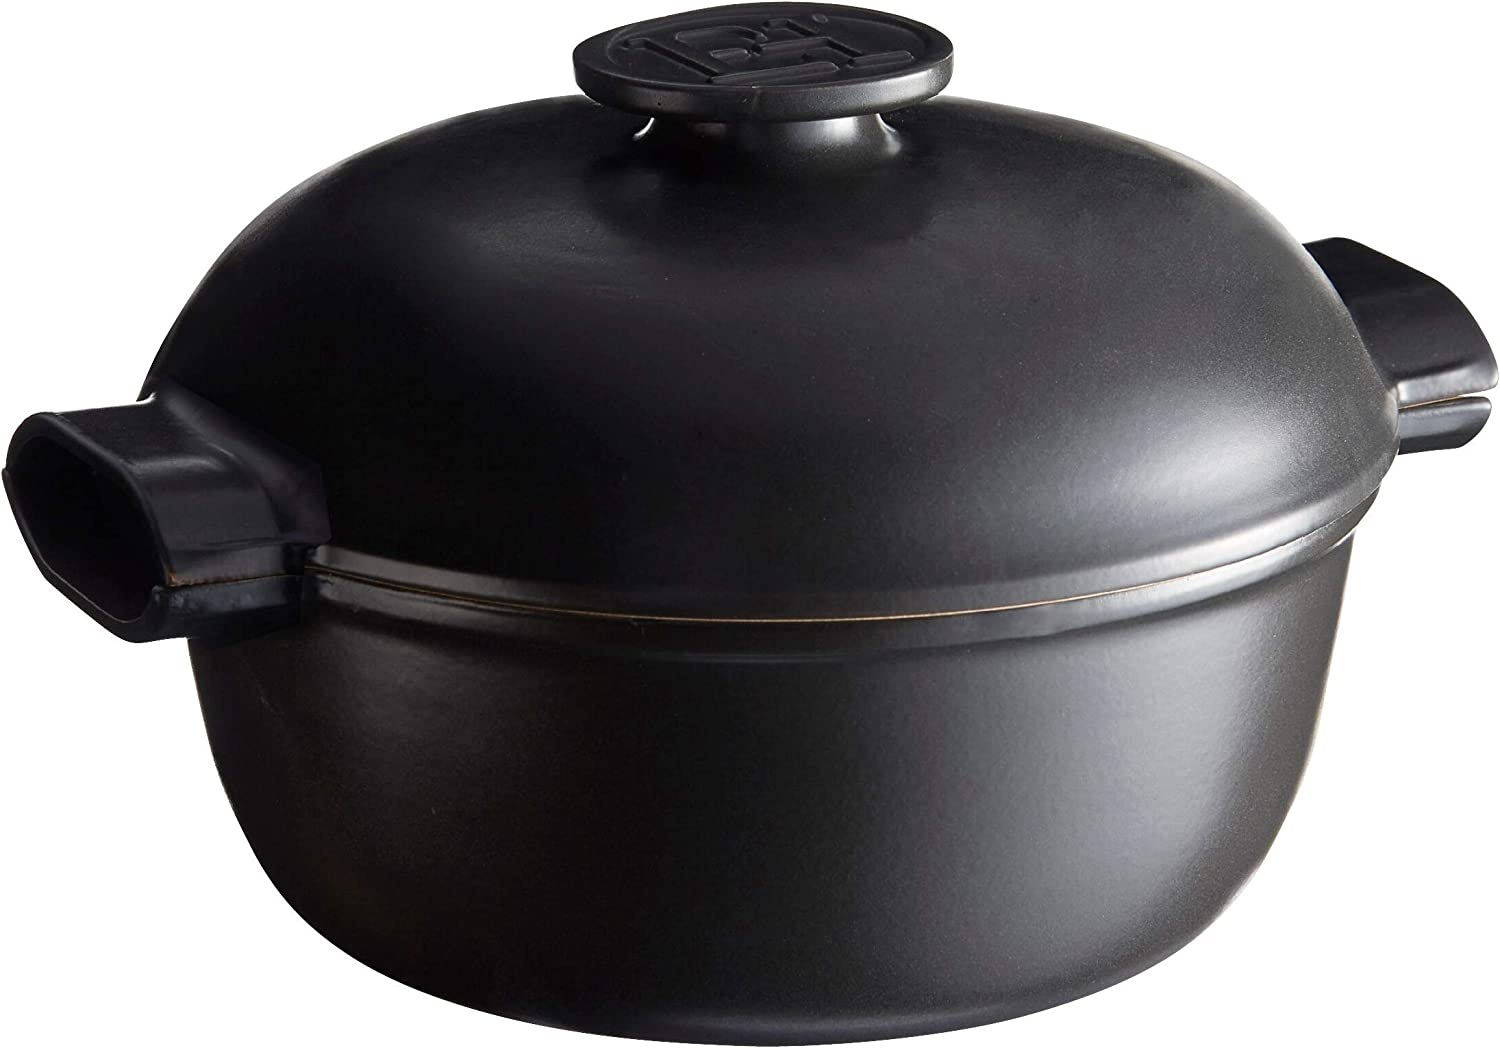 Emile Henry Delight Ceramic Round Dutch Oven 4L